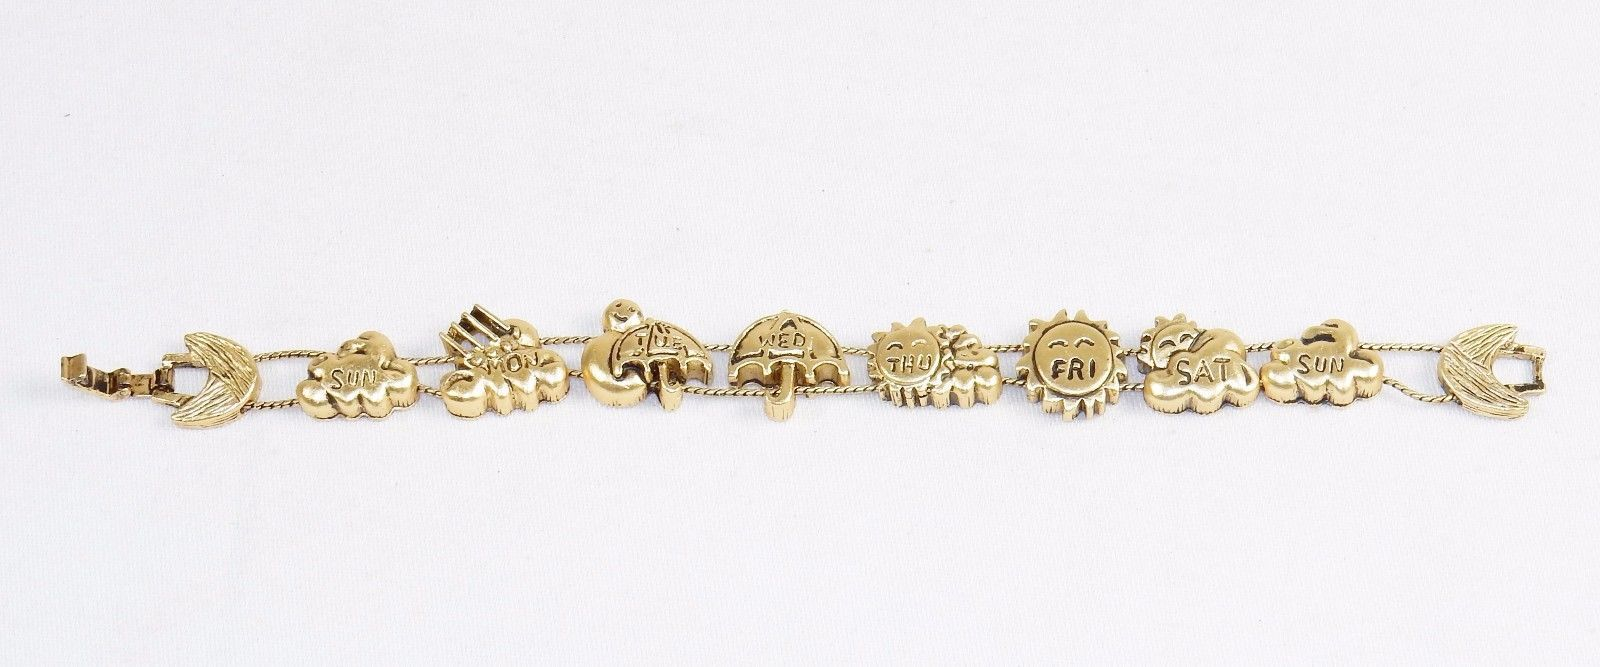 Charm Bracelet, A Week Of Weather ~ TOFA Classic Slider, Gold Toned #5430640